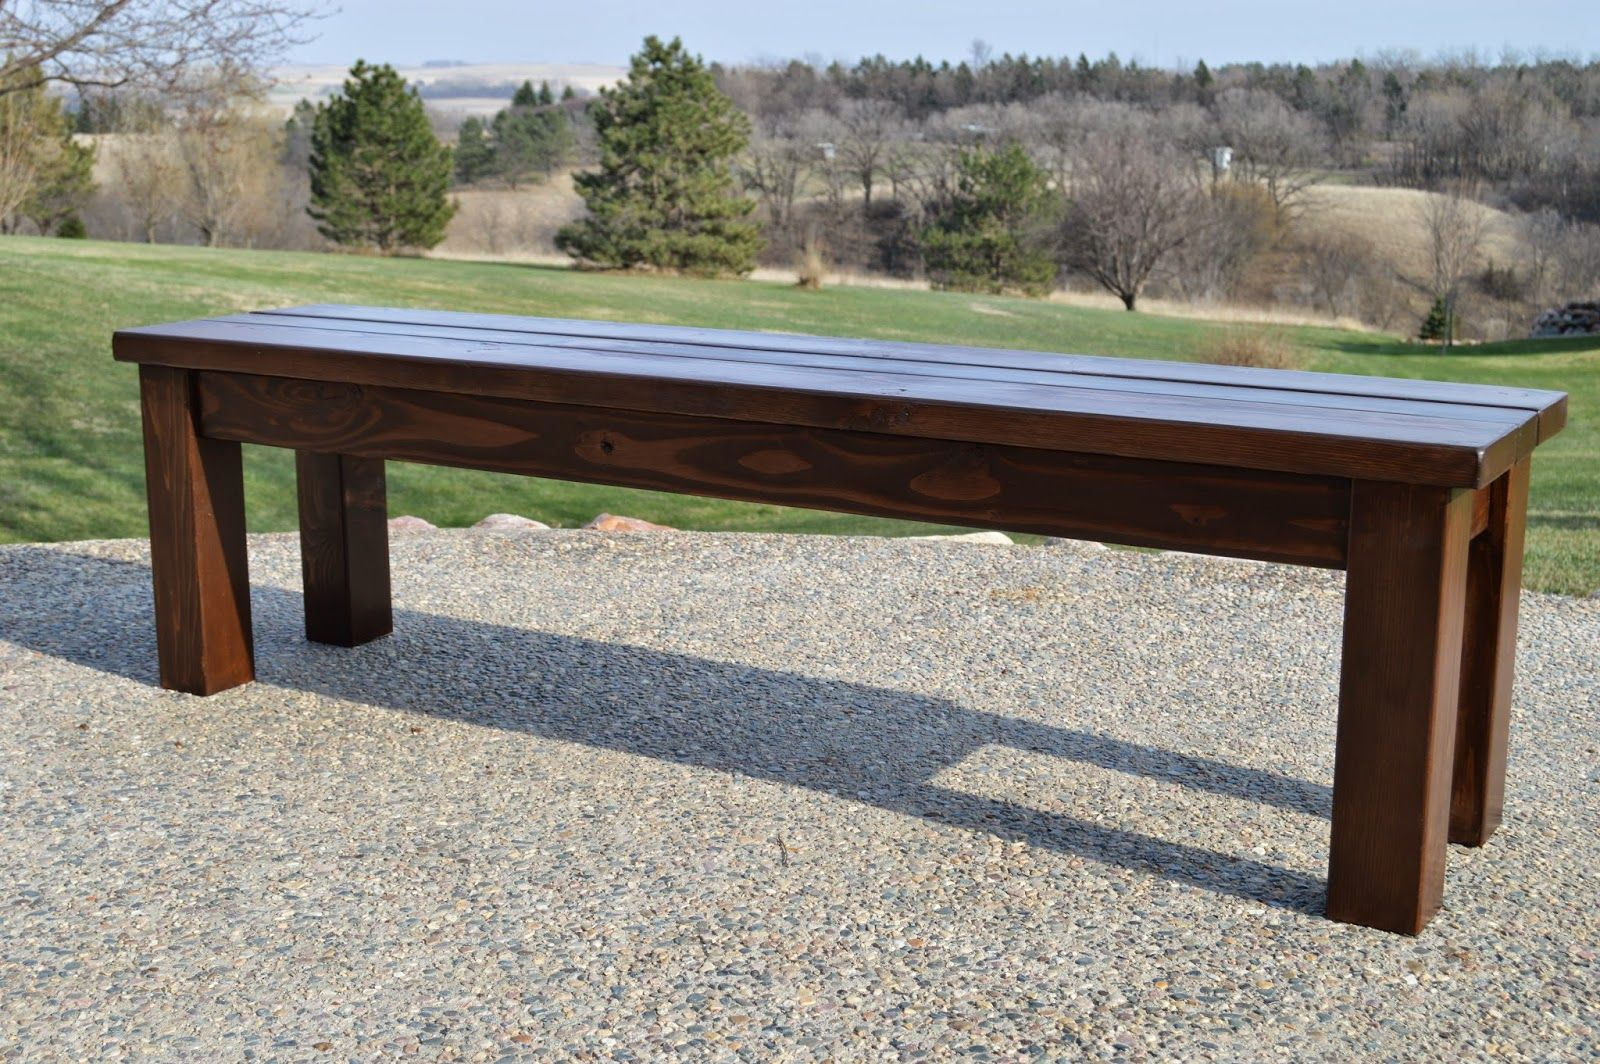 Bench Seating for Patio Table KRUSE'S Simple